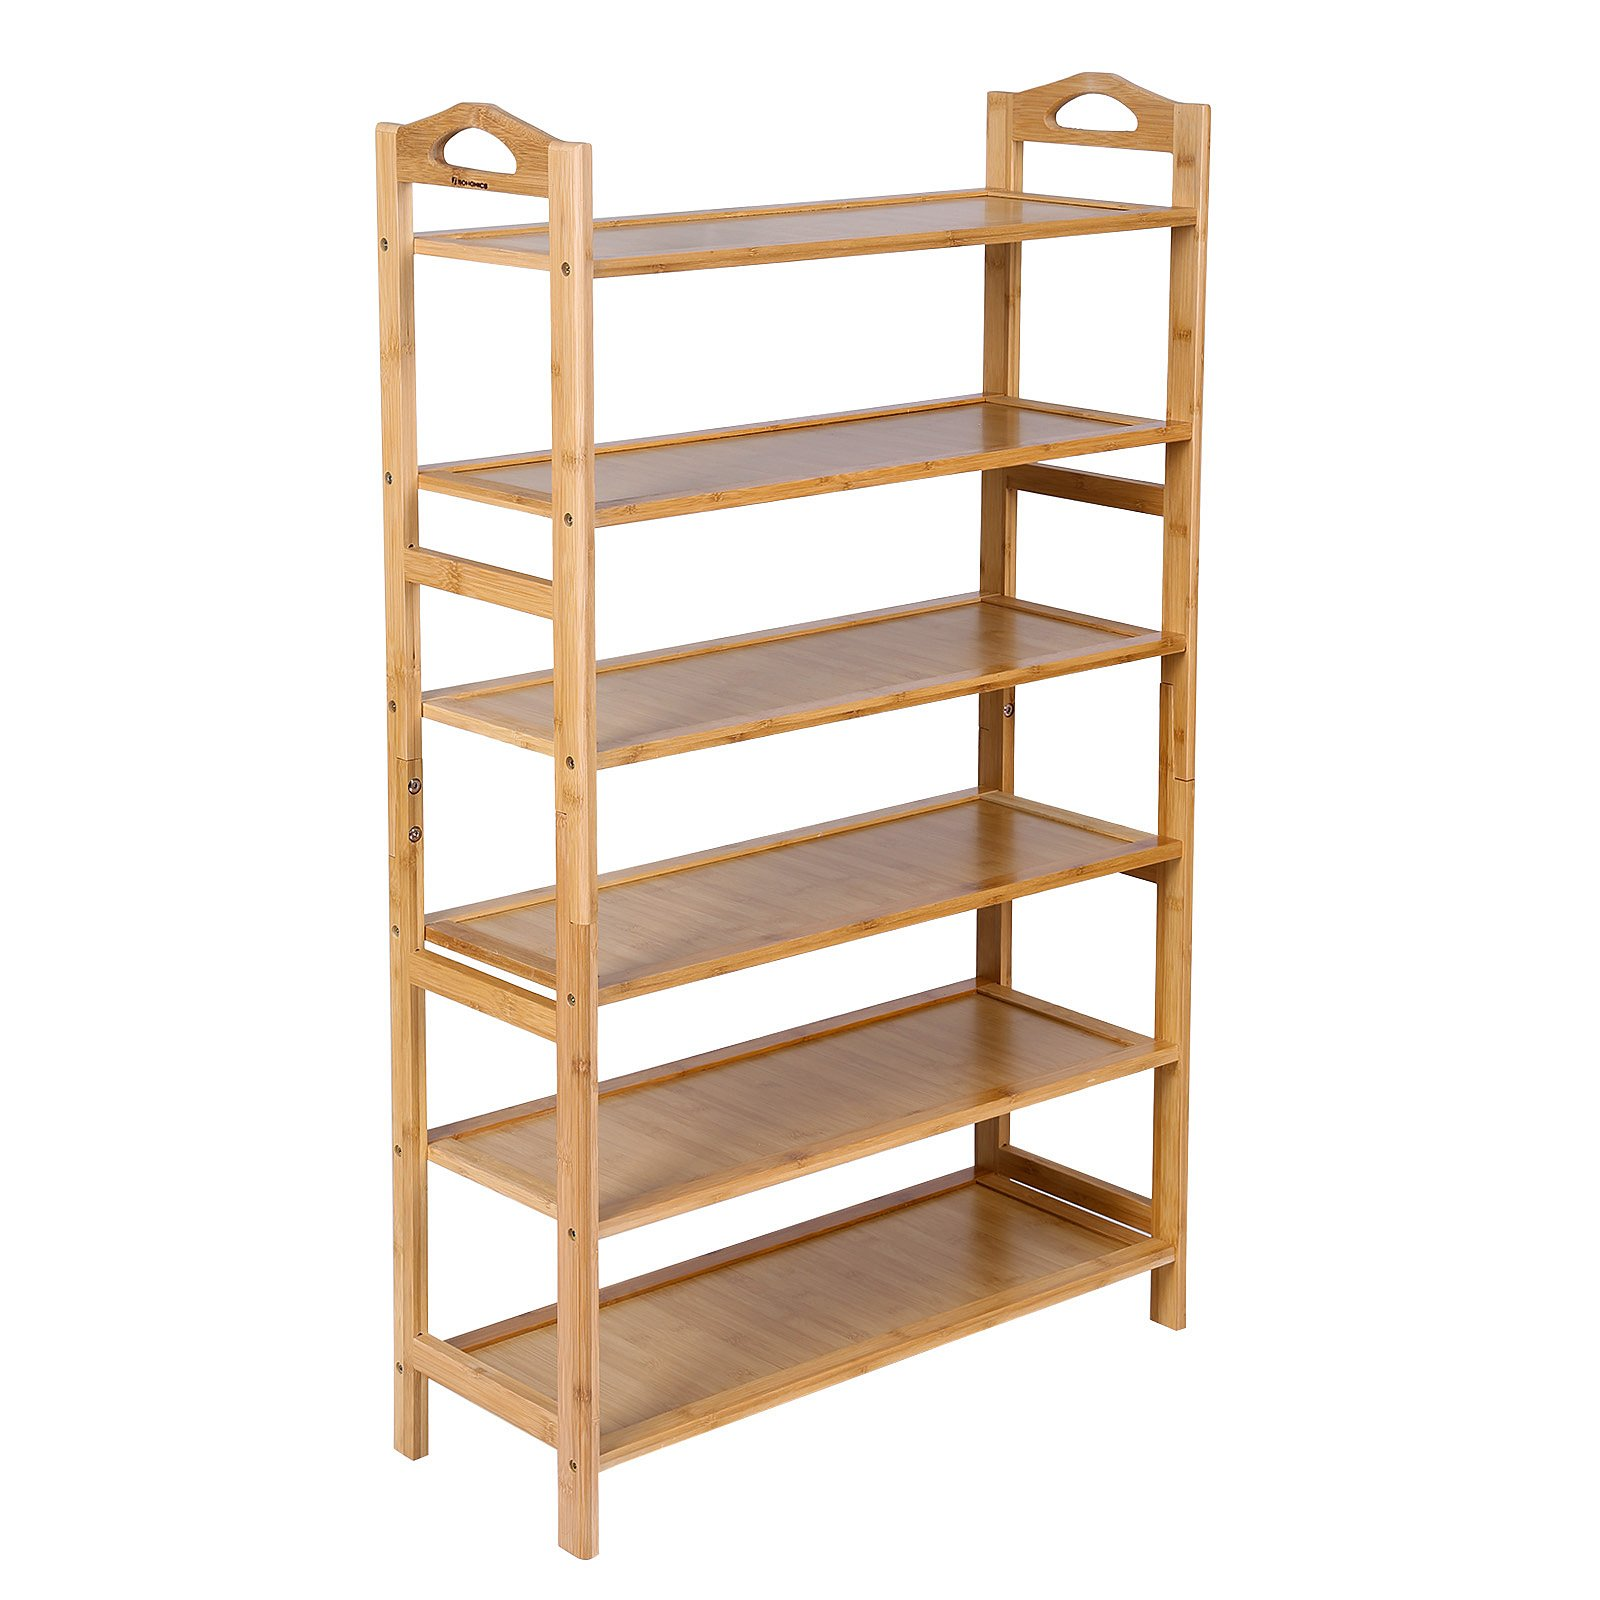 SONGMICS Bamboo Wood Shoe Rack 6-Tier 18-24 Pairs Entryway Standing Shoe Shelf Storage Organizer for Kitchen Living Room Closet ULBS26N by SONGMICS